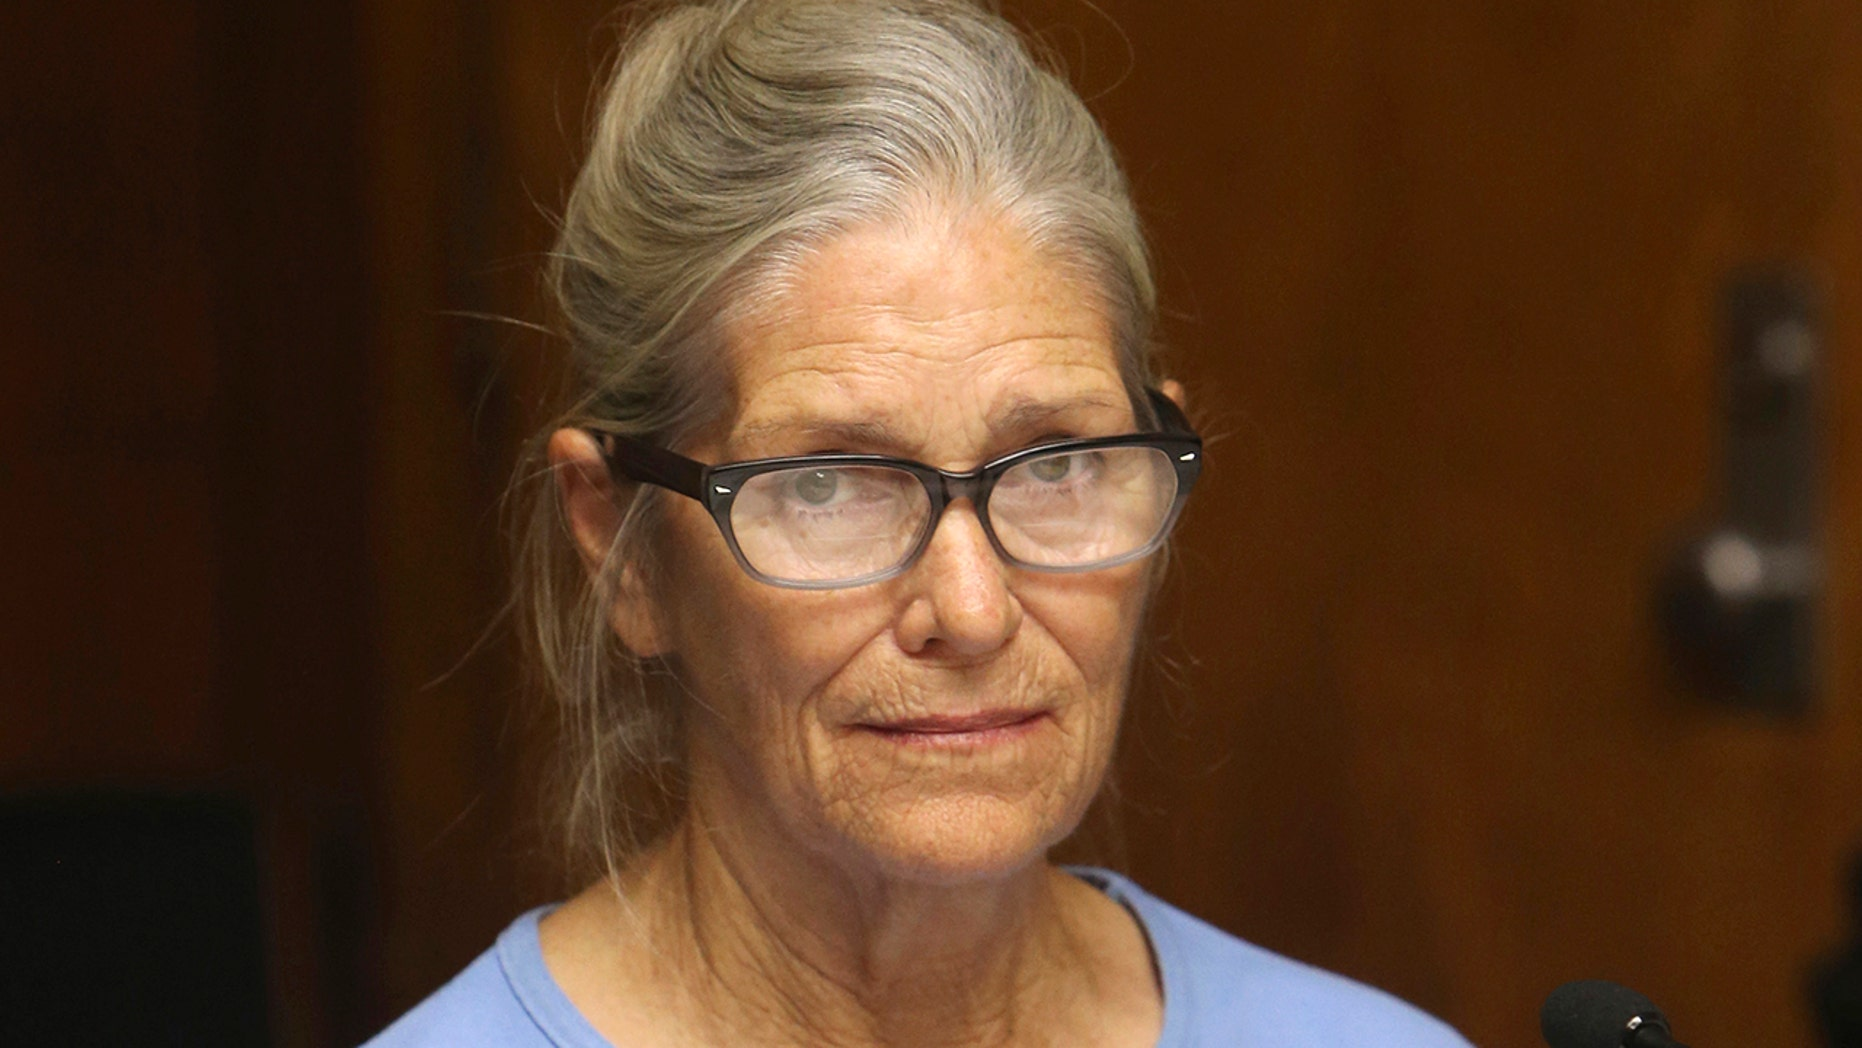 Leslie Van Houten takes part in a password hearing at the California Women's Office in Corona, California, September 6, 2017. (Associated Press)